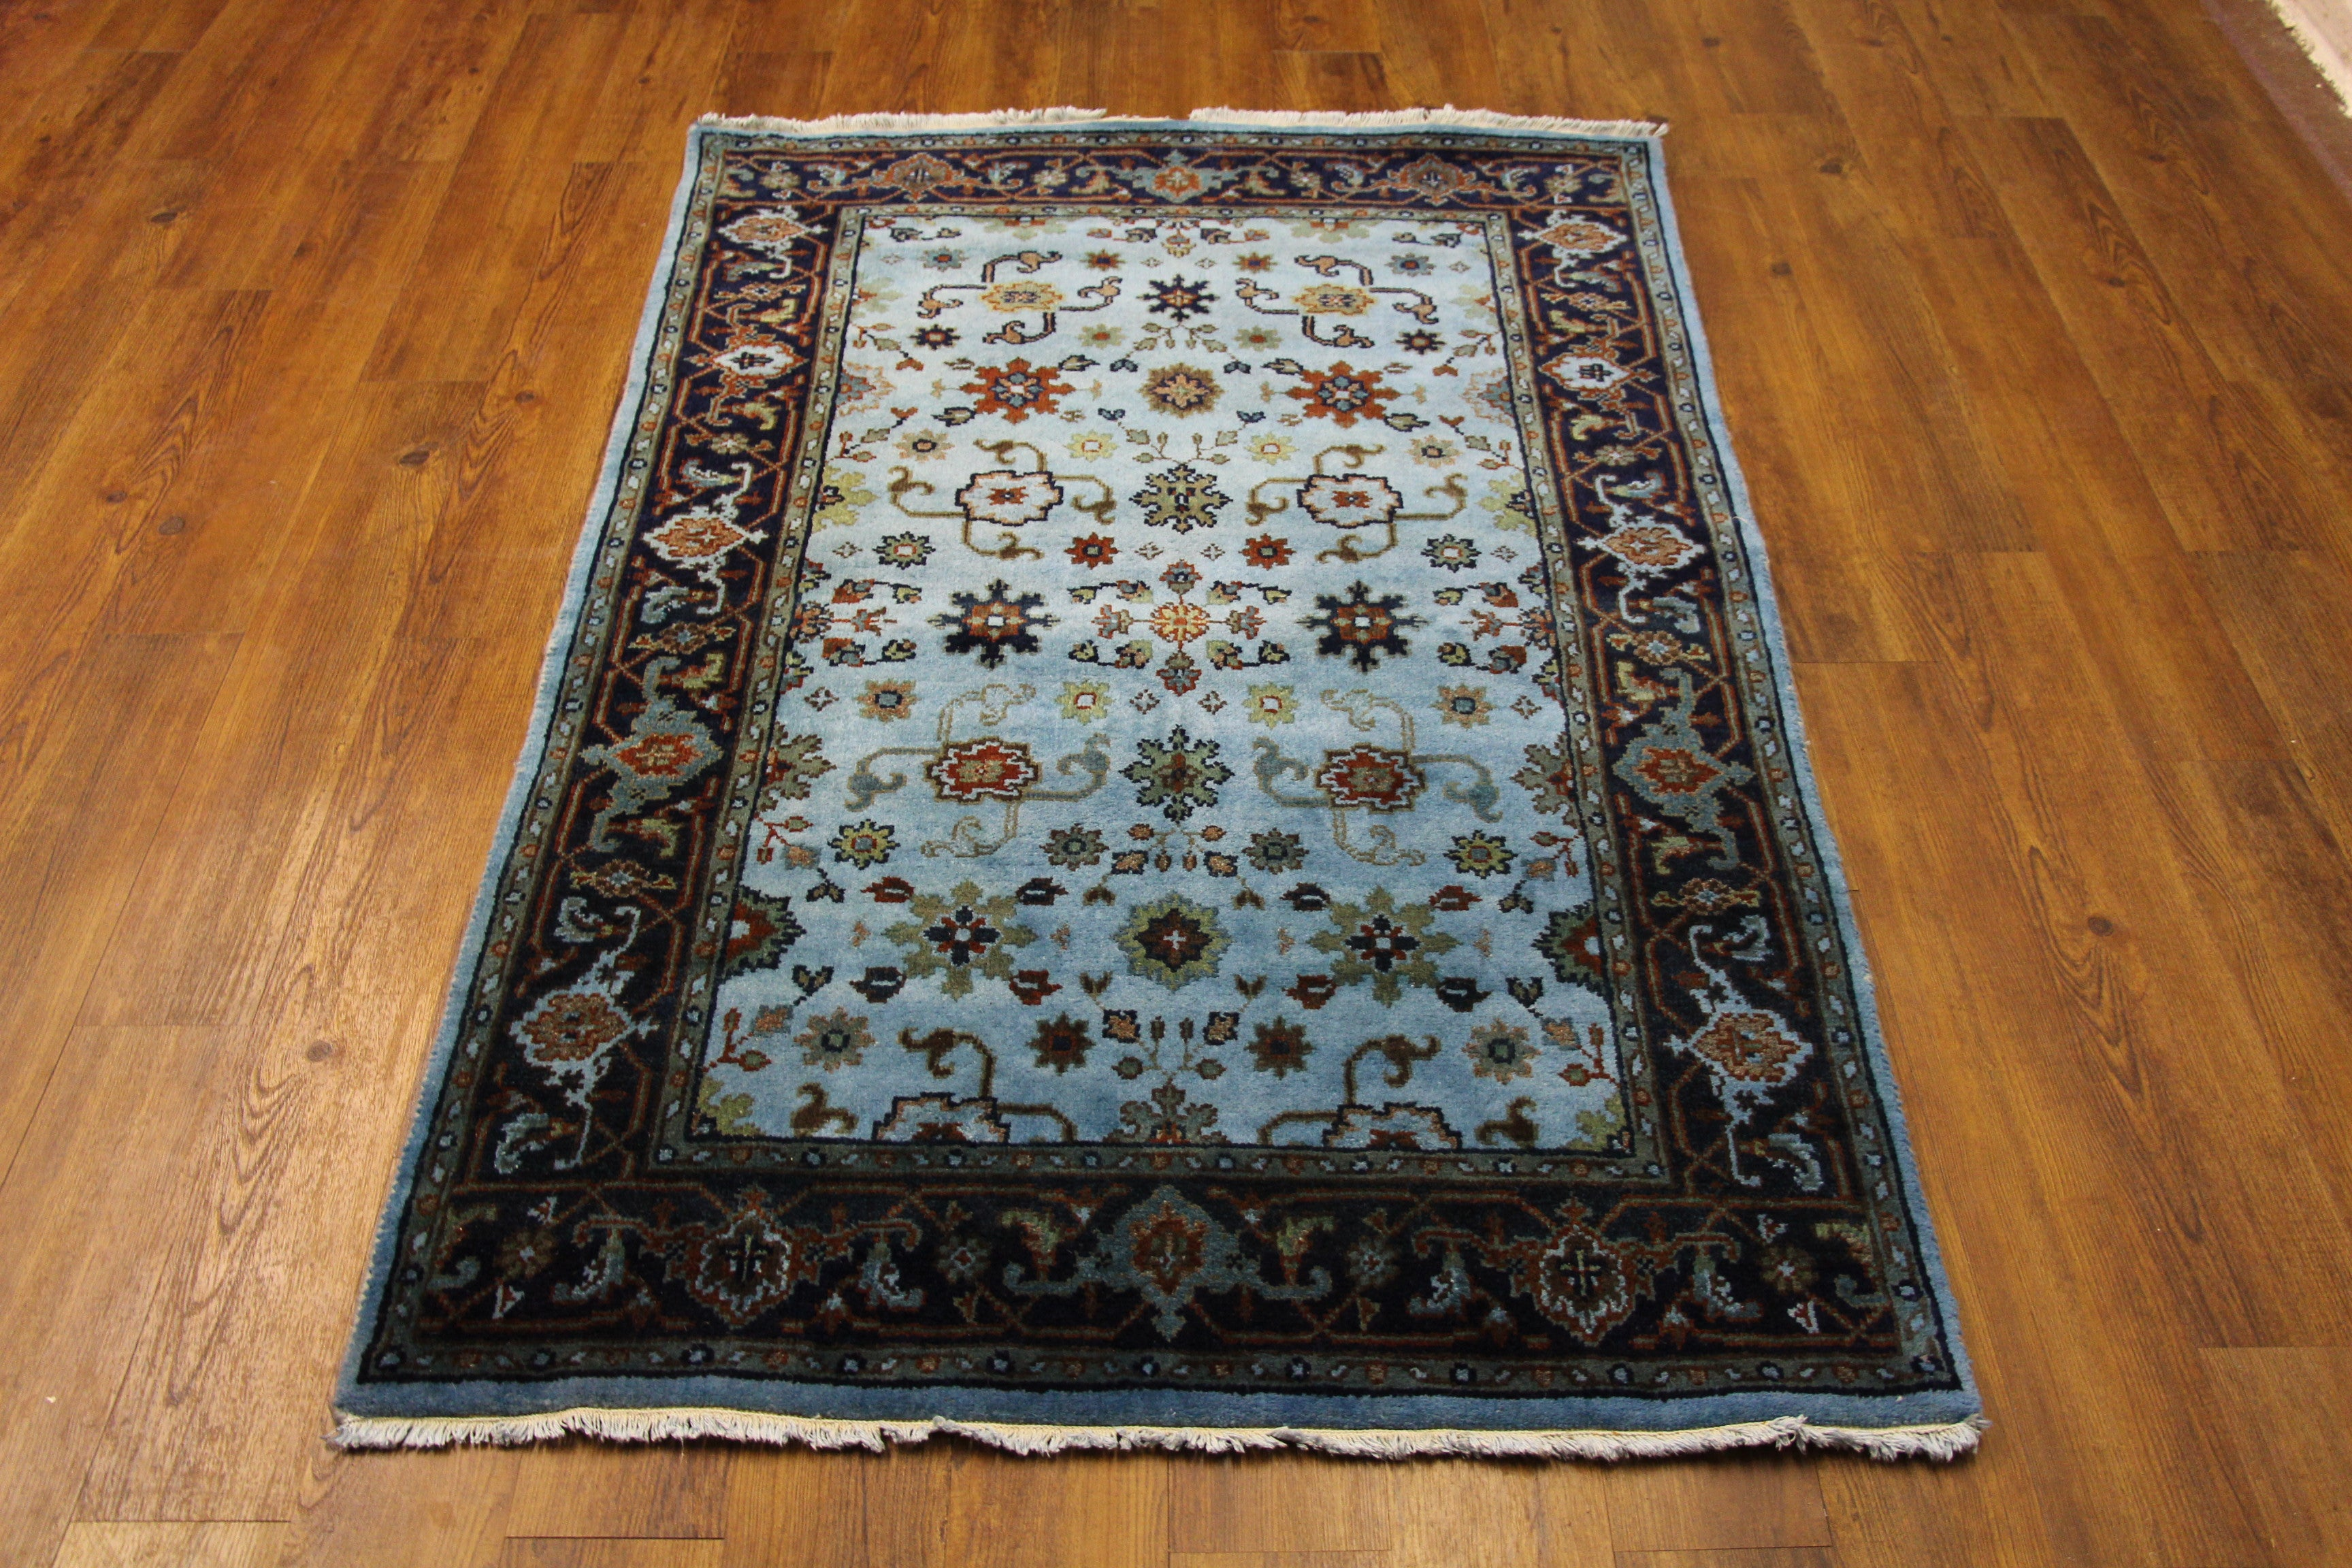 4x6 Teal Area Rug Over-Dyed Handknotted Wool Rug 2780 - west of hudson